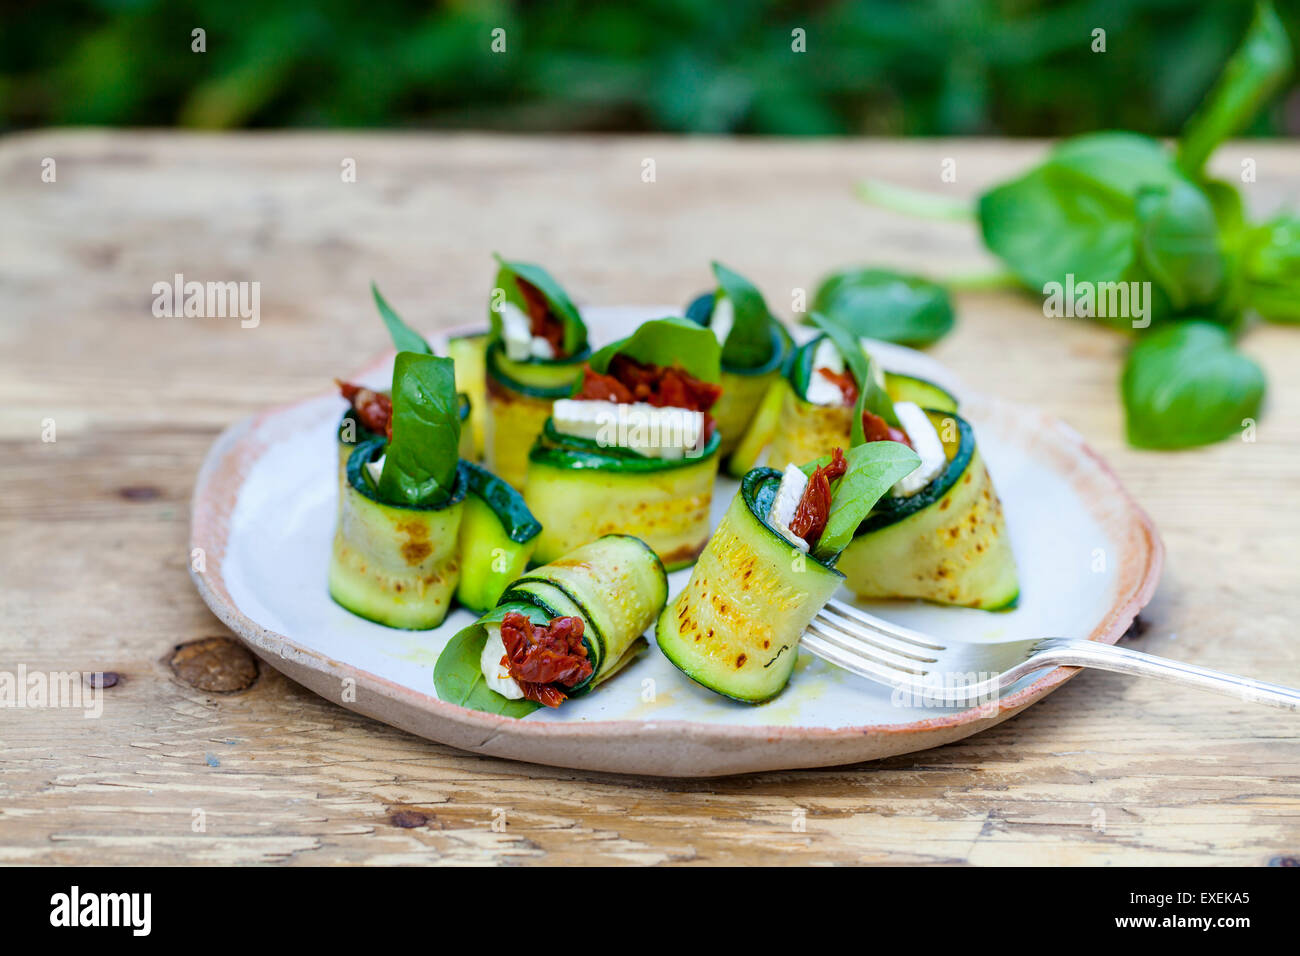 Zucchini rolls with goat cheese, sun dried tomatoes and basil - Stock Image